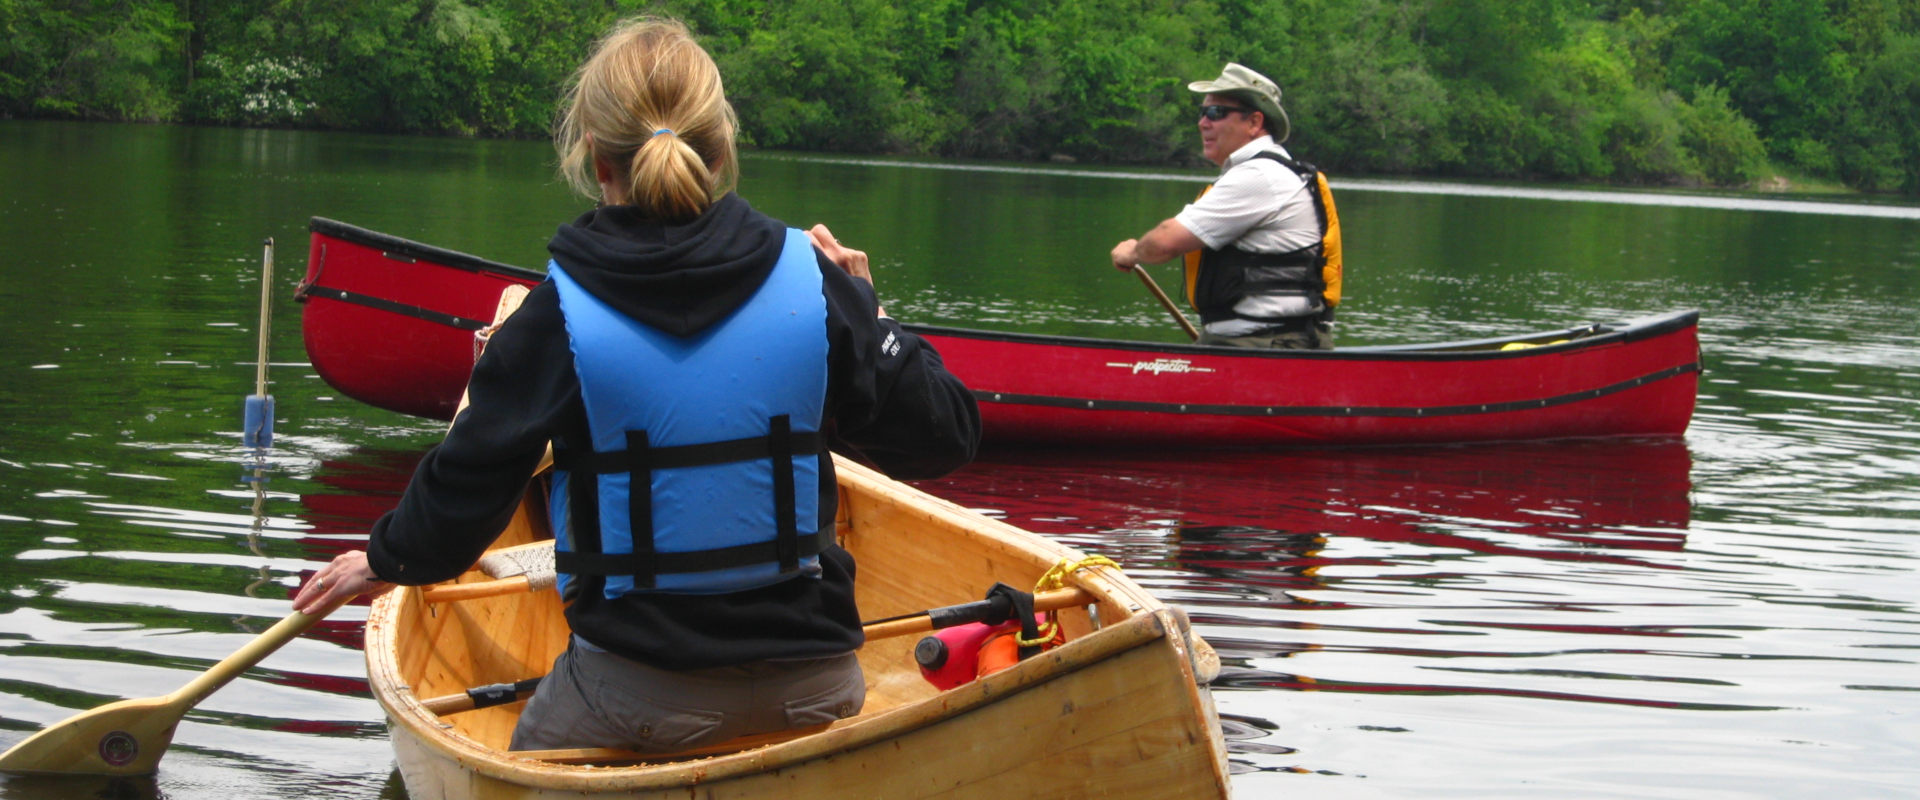 ORCKA canoe certification lessons on Grand River in Ontario